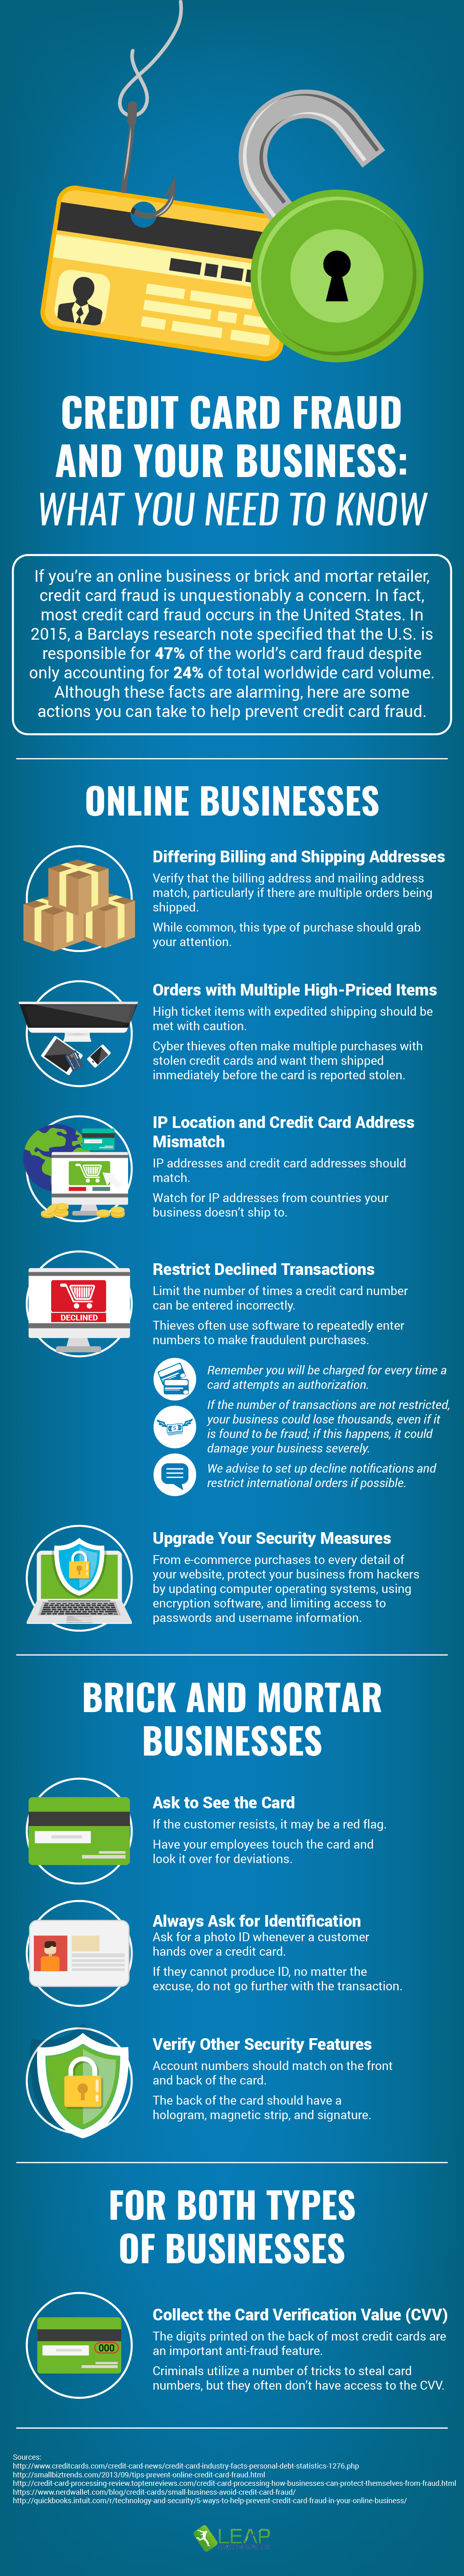 Credit card fraud and your business leap payments credit card fraud effects on businesses infographic colourmoves